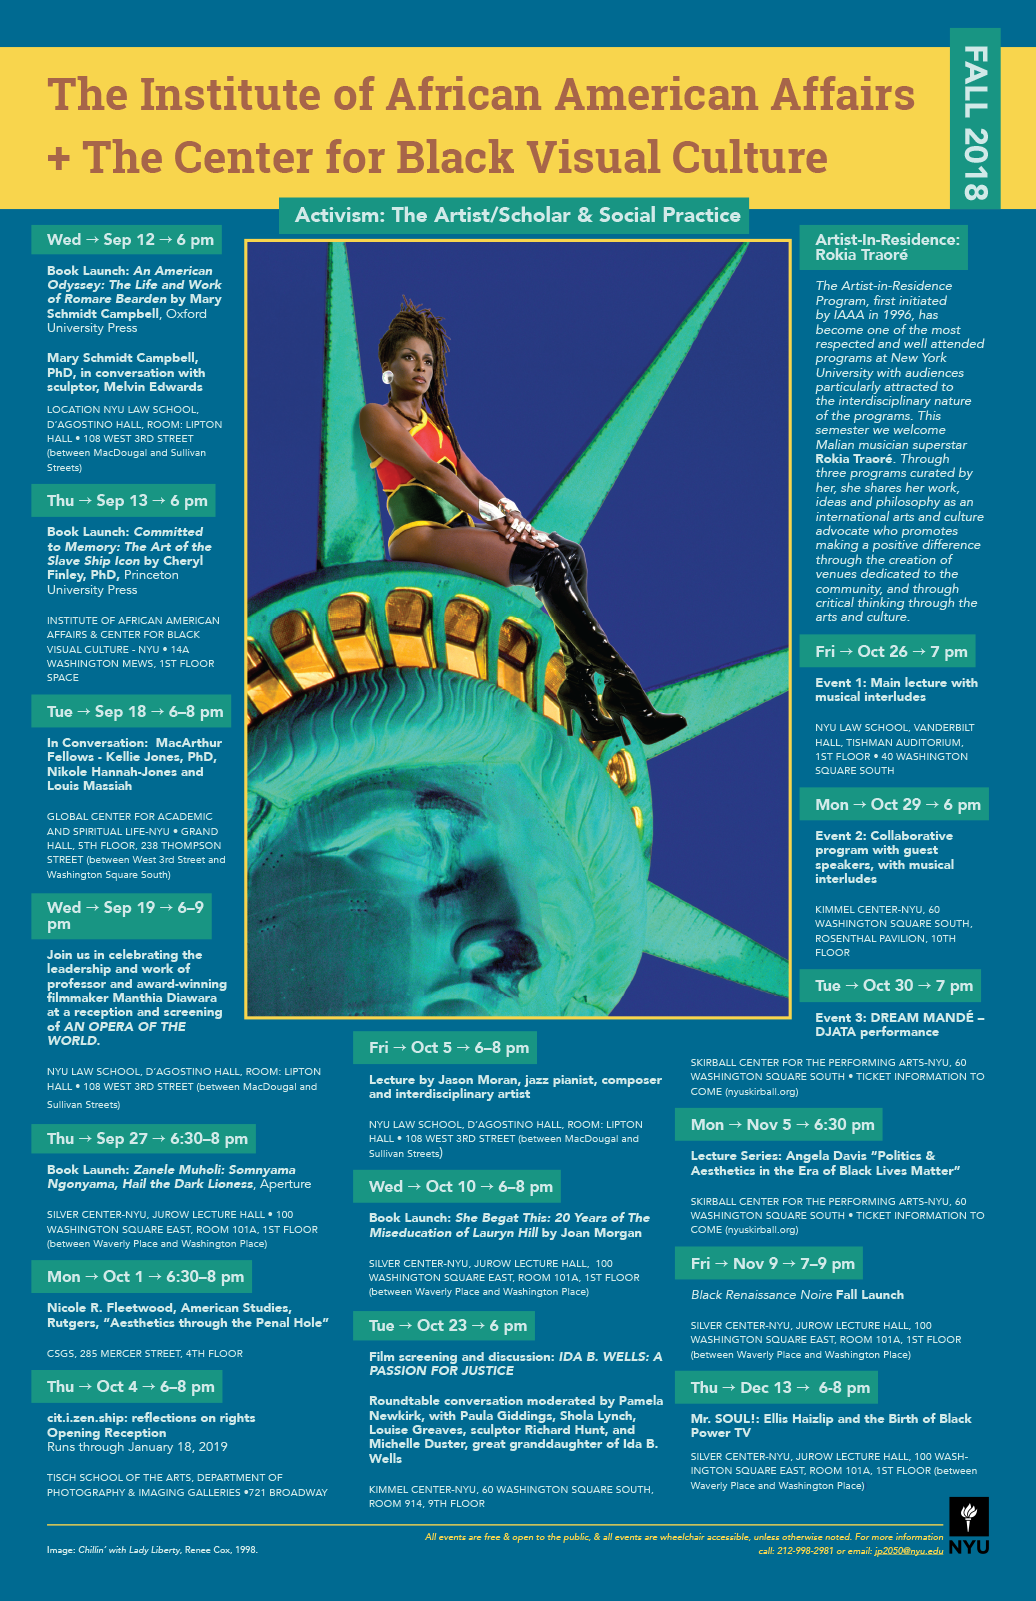 Institute of African American Affairs and Center for Black Visual Culture event poster